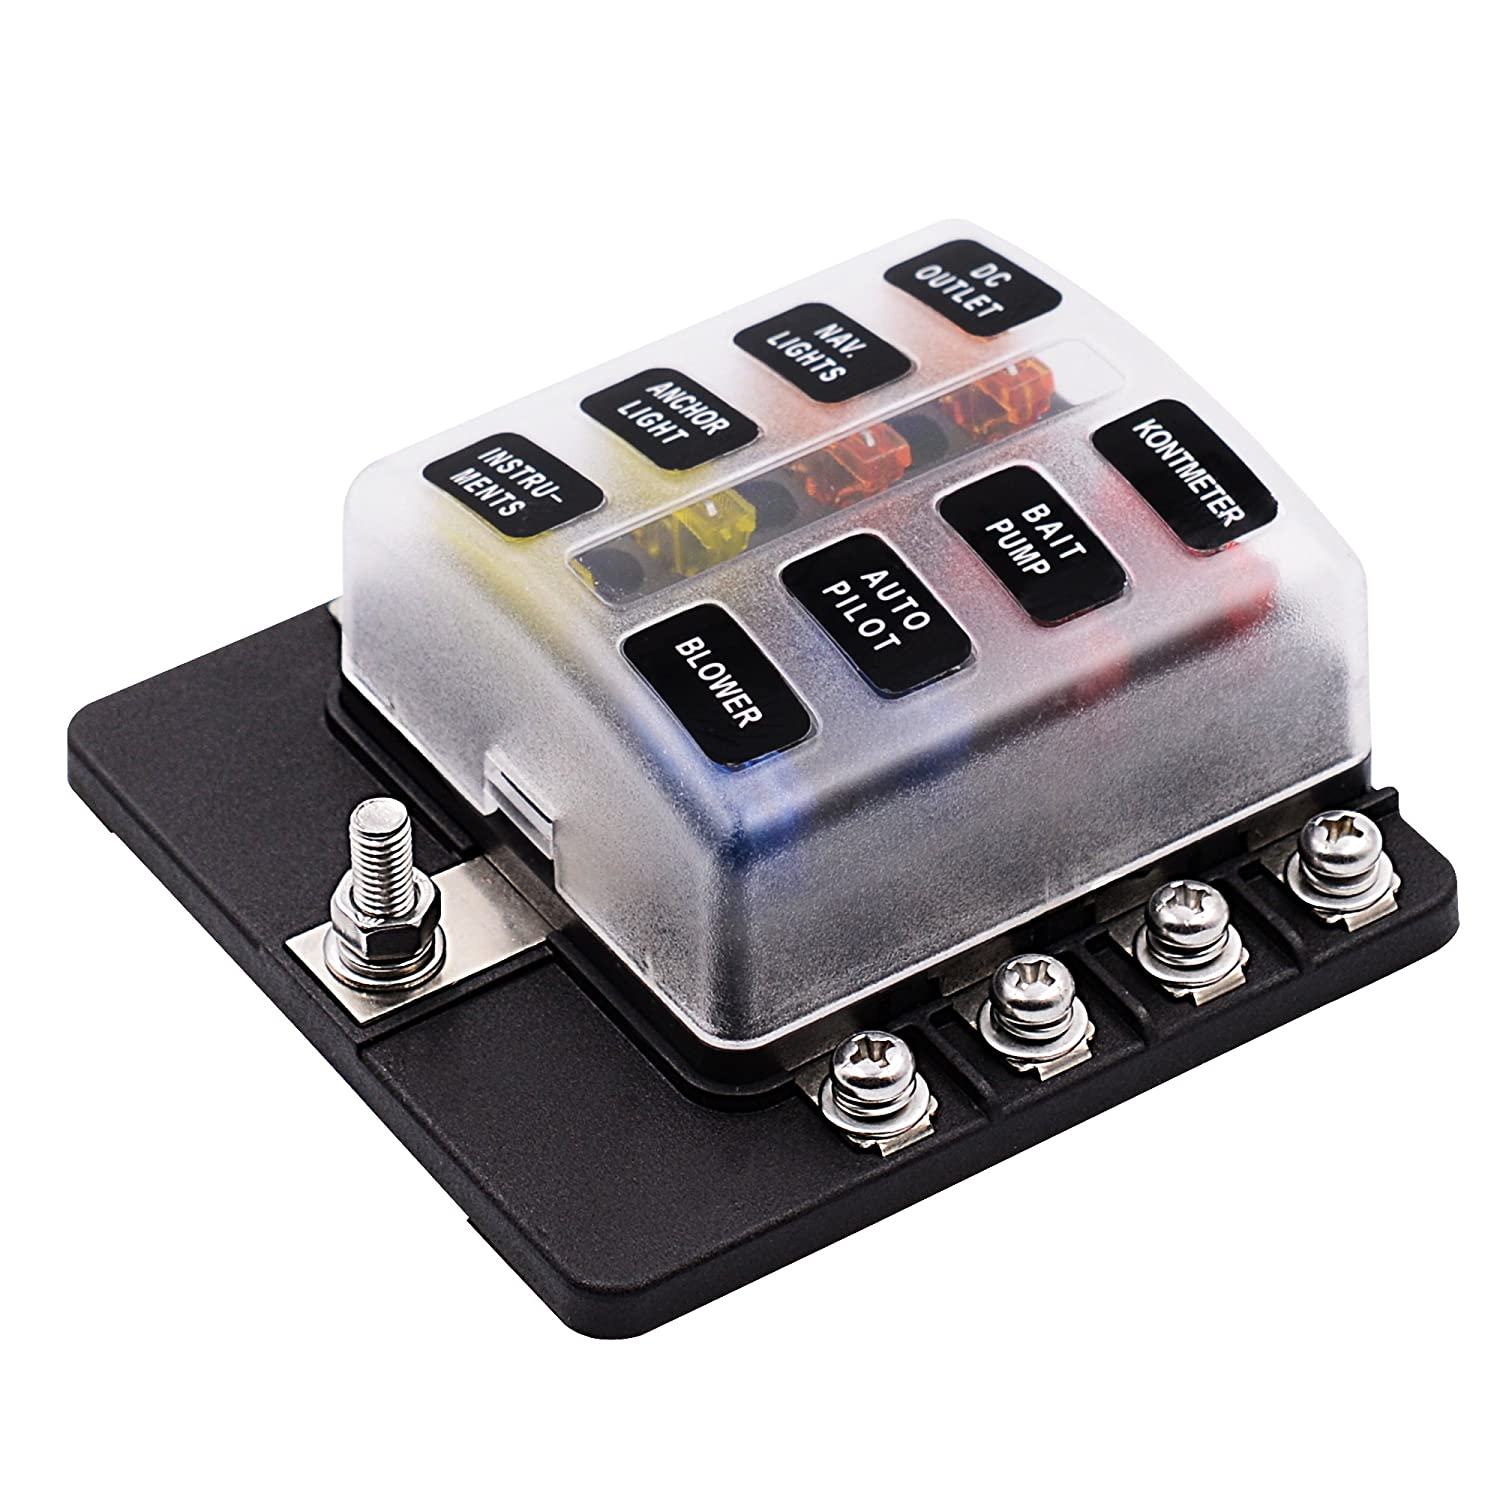 Topten Blade Fuse Box Waterproof Automotive Block With Camper Protection Cover And Led Indicator For Car Boat Marine Rv